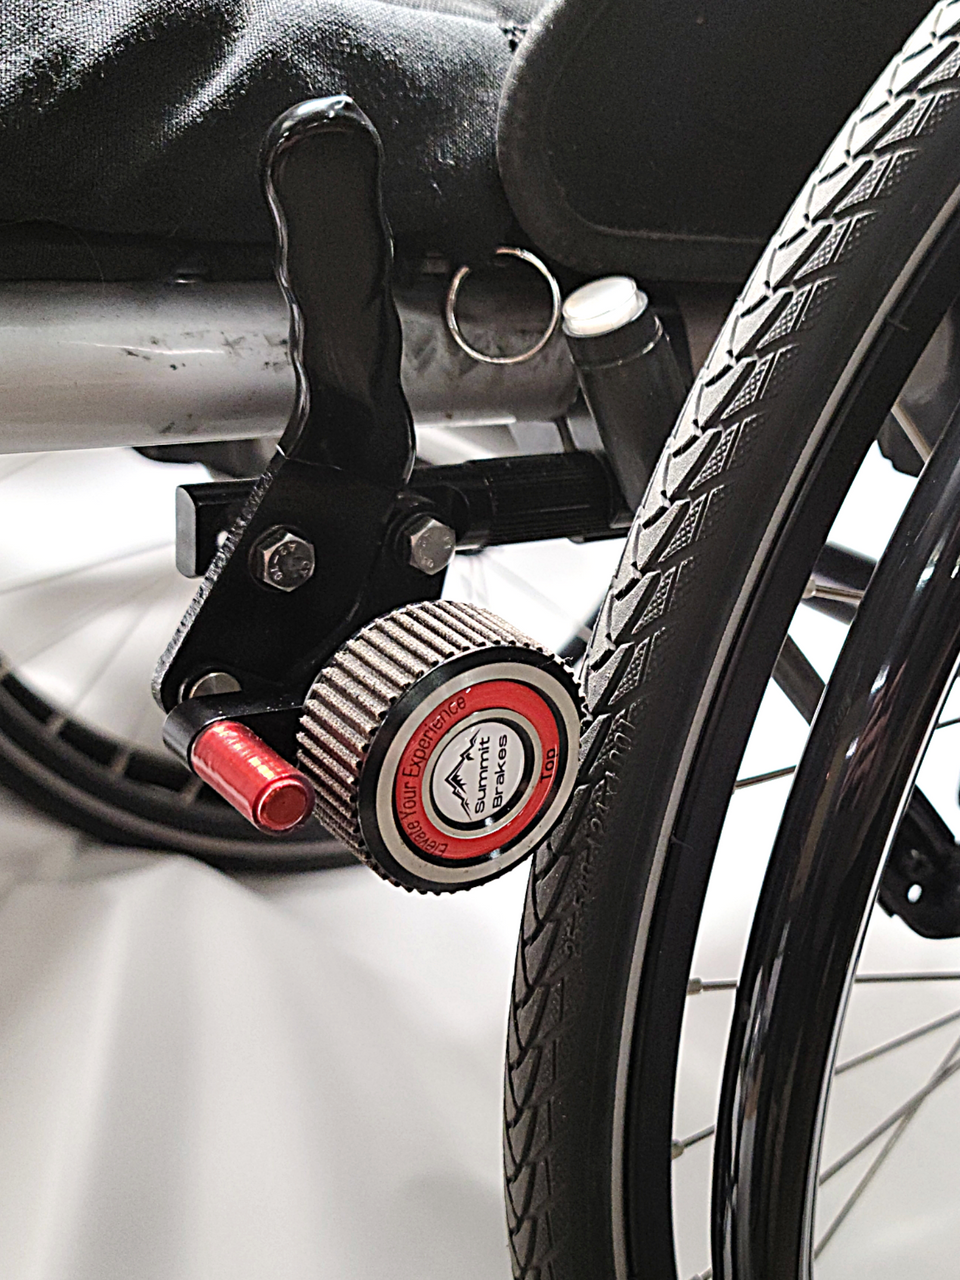 Dealer MSRP Quote Summit Brakes -  Hill Climber, Stair Climber, and Anti-Roll, by Living Spinal